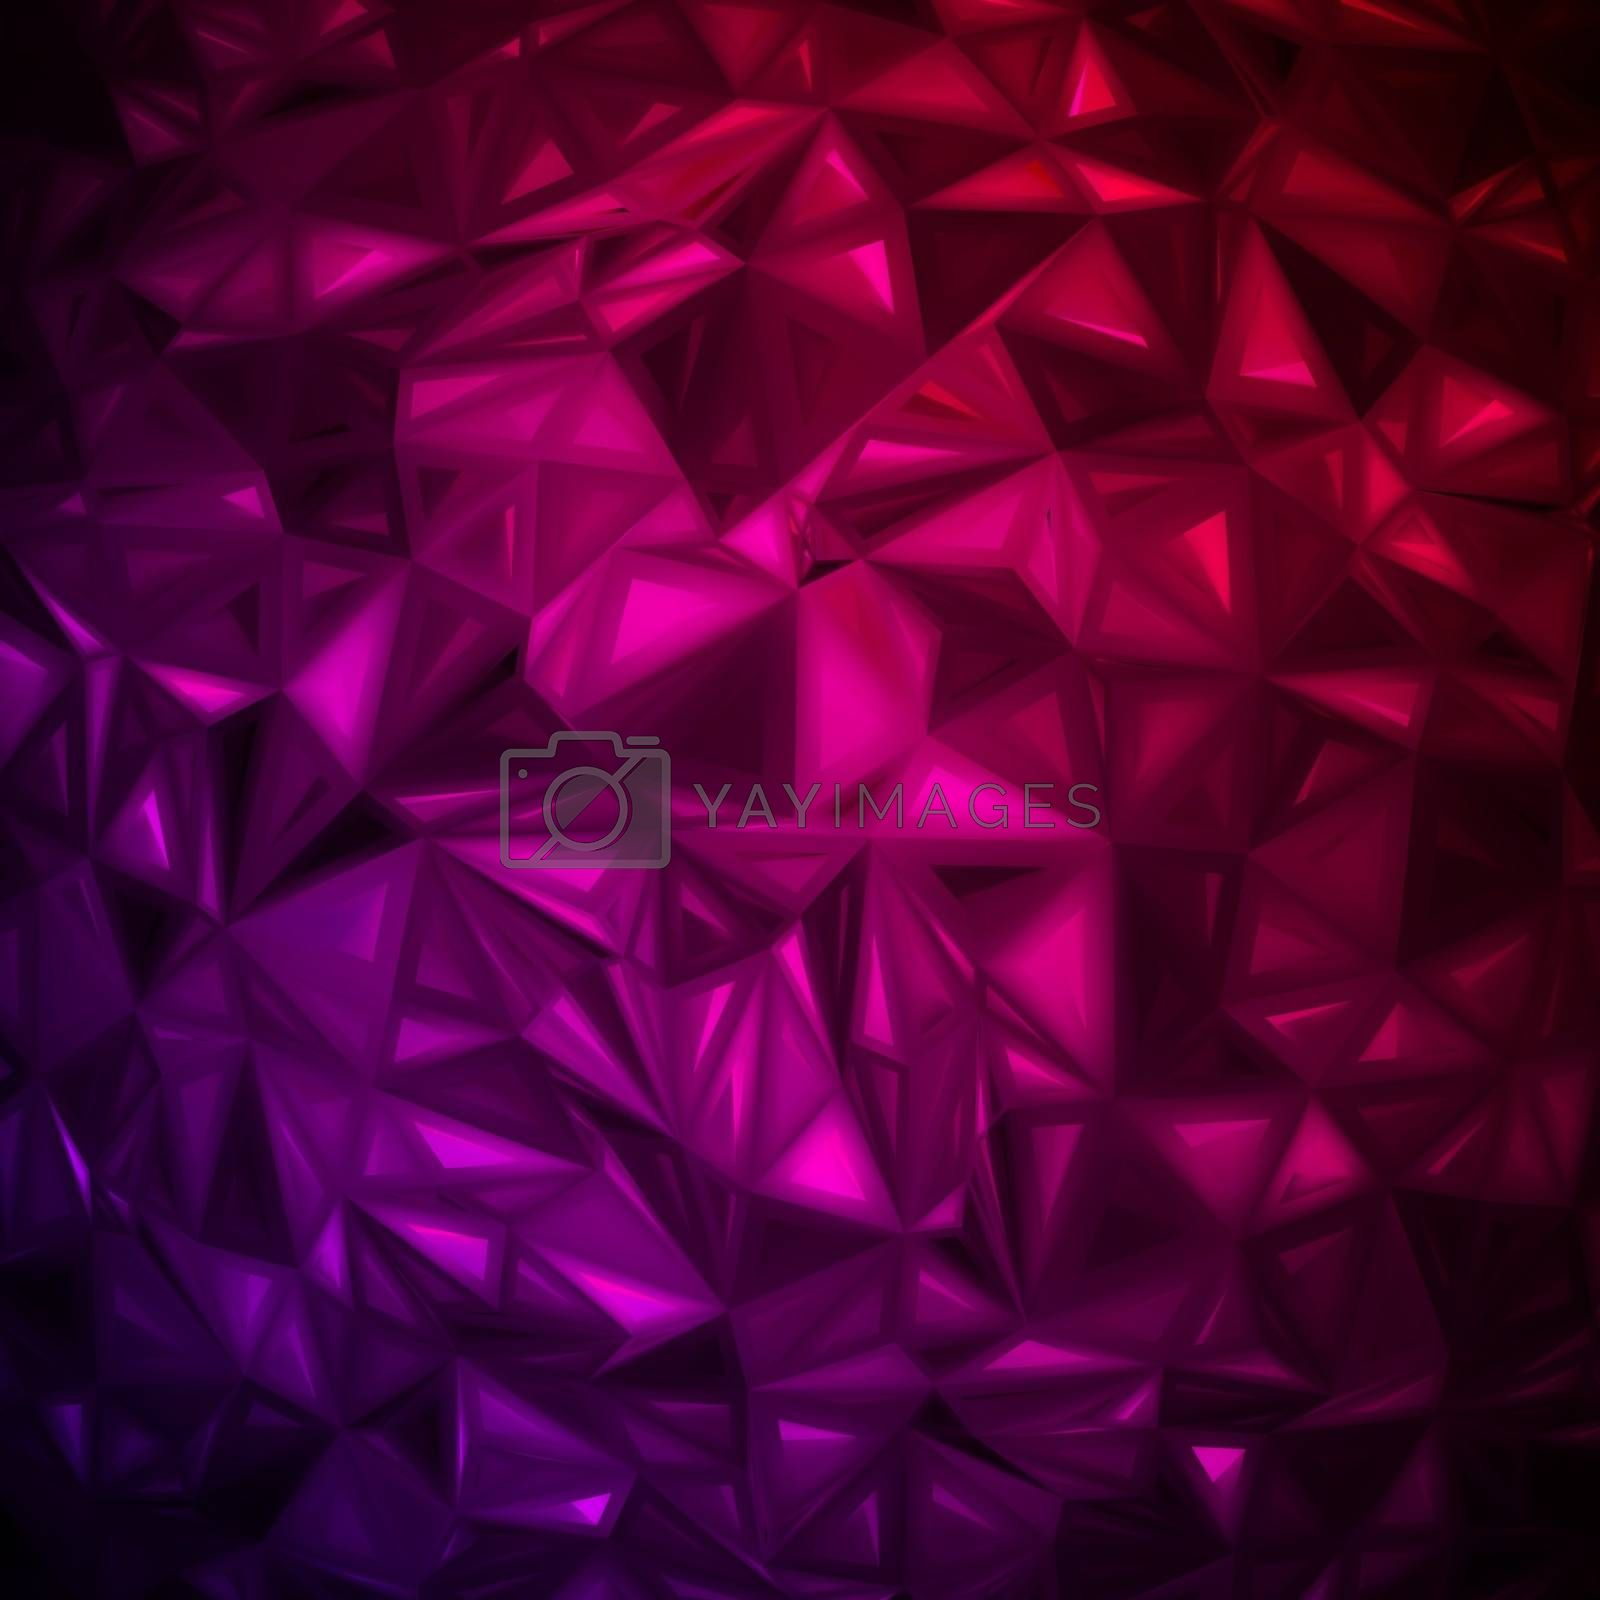 Royalty free image of Rumpled abstract background. EPS 8 by Petrov_Vladimir